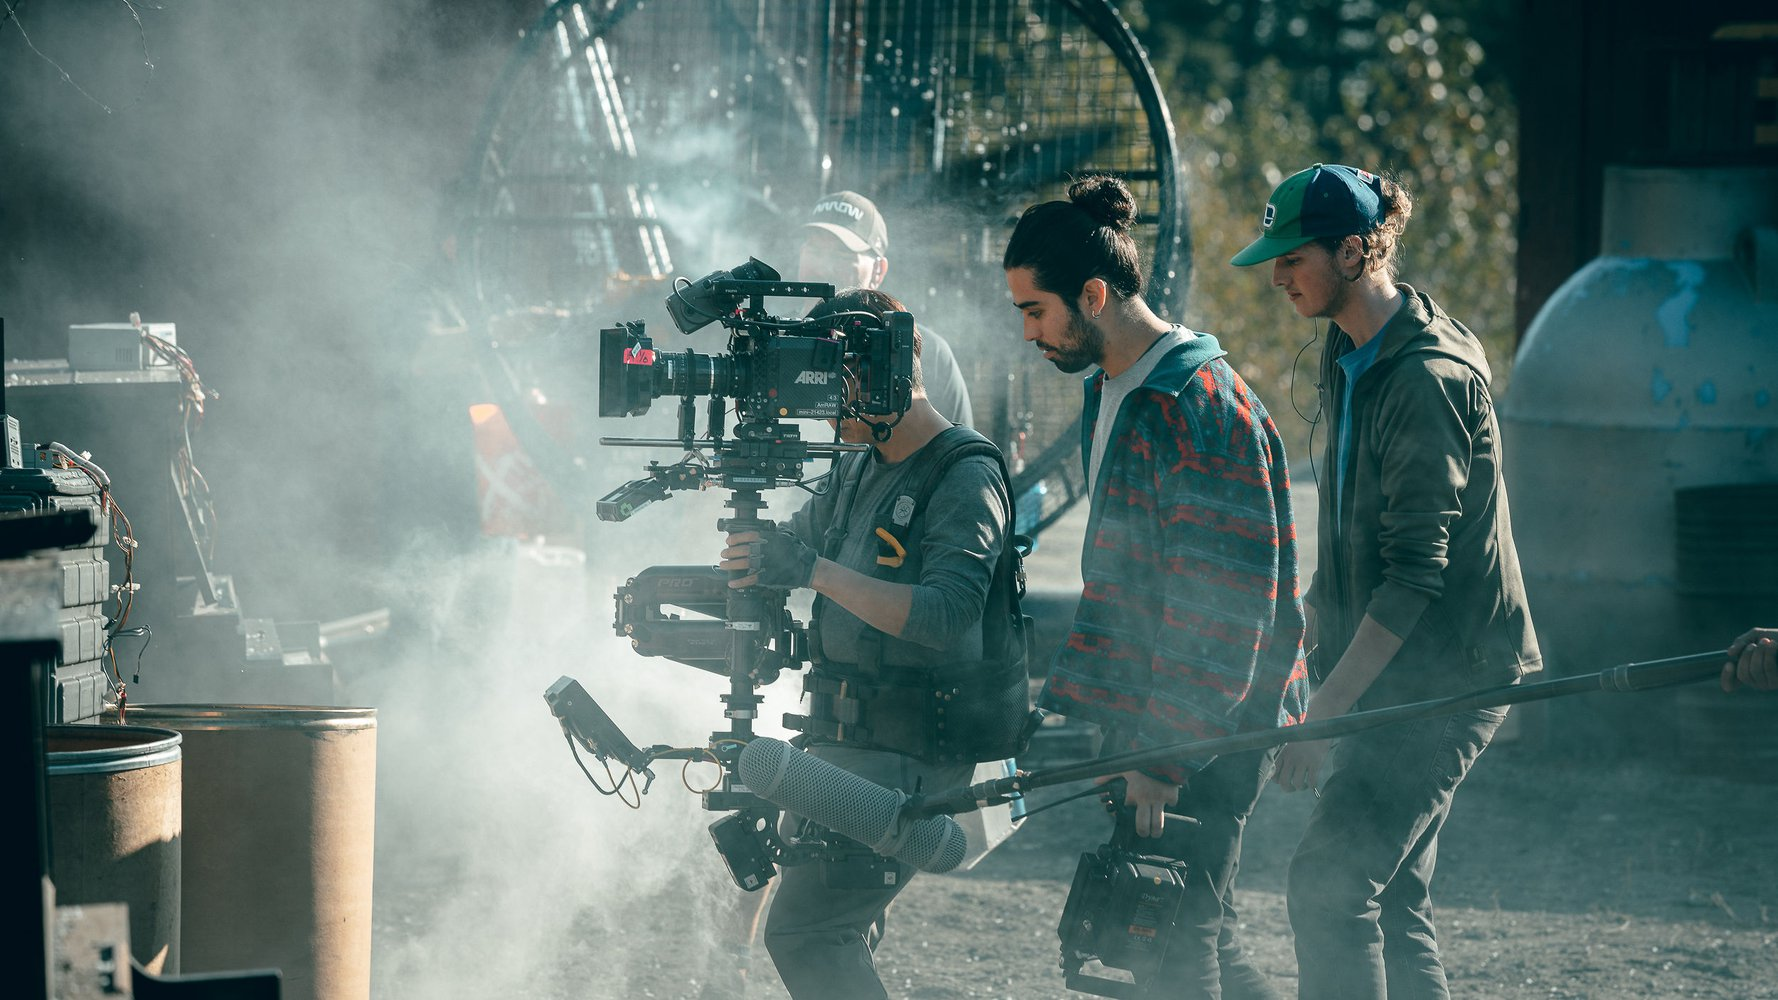 What equipment do you need to have a smooth on-set experience?